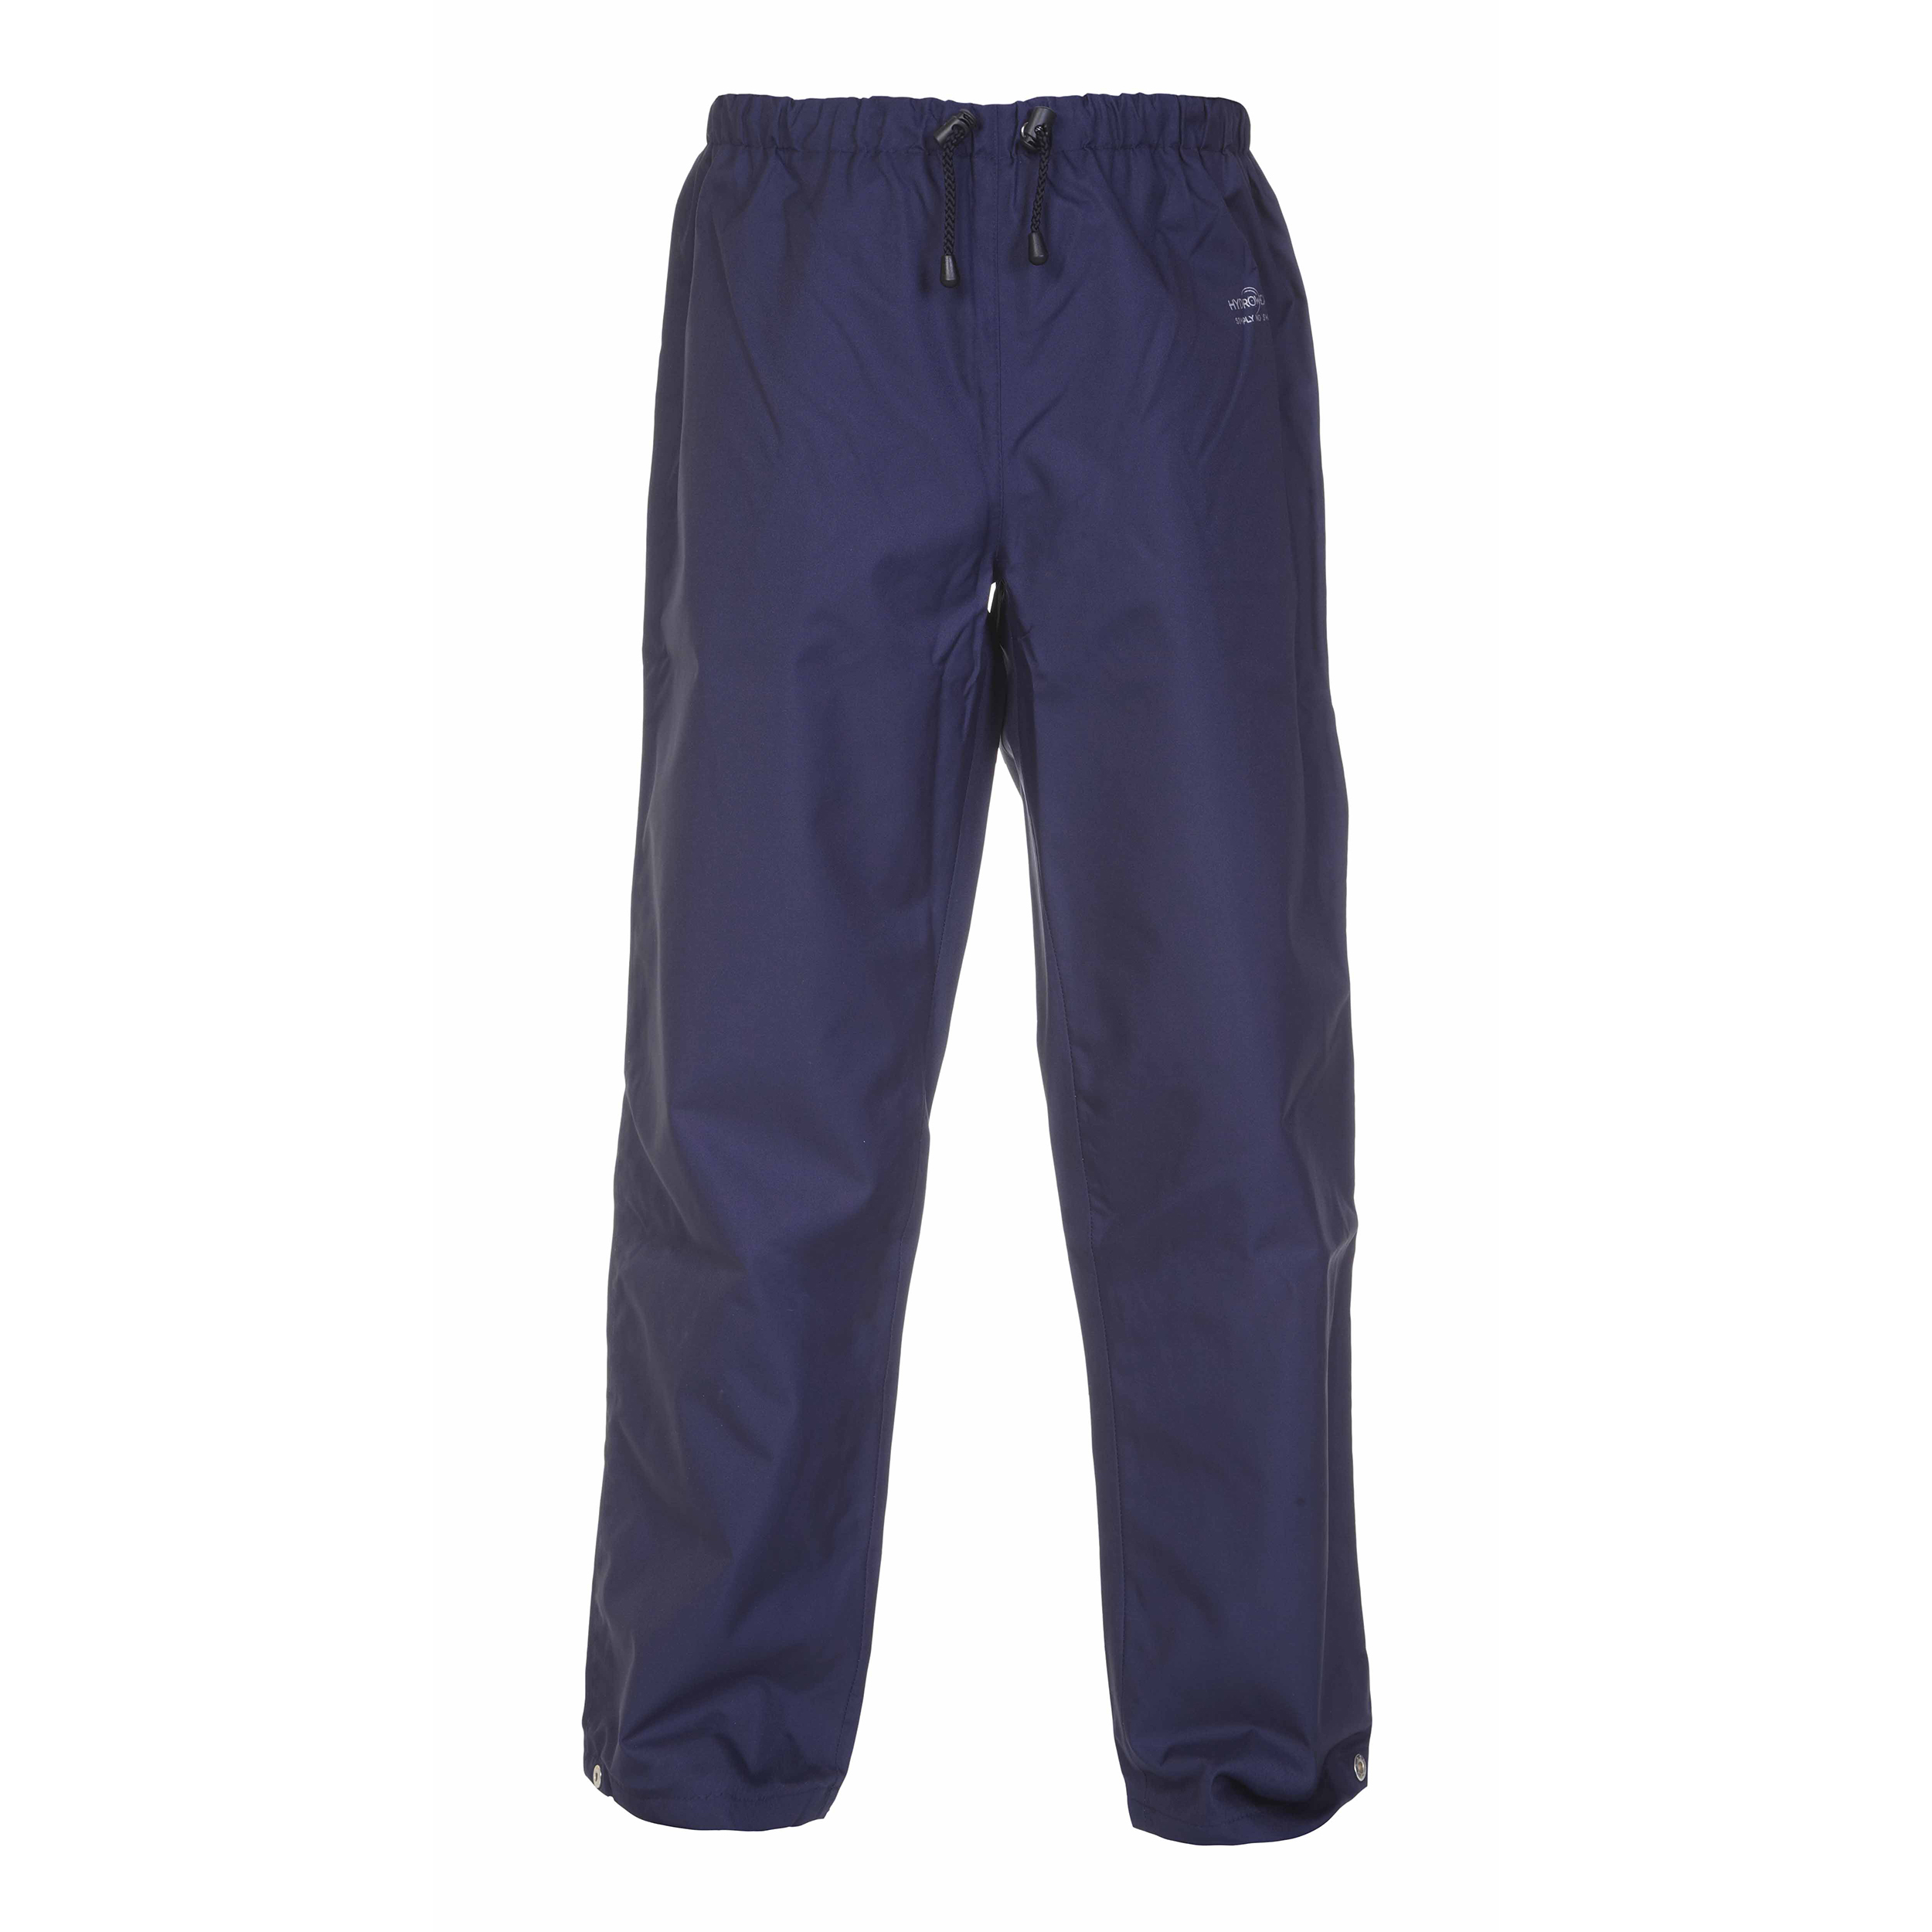 Limitless Hydowear Utrecht SNS Waterproof Trousers Meduim Navy Ref HYD072350NM *Up to 3 Day Leadtime*